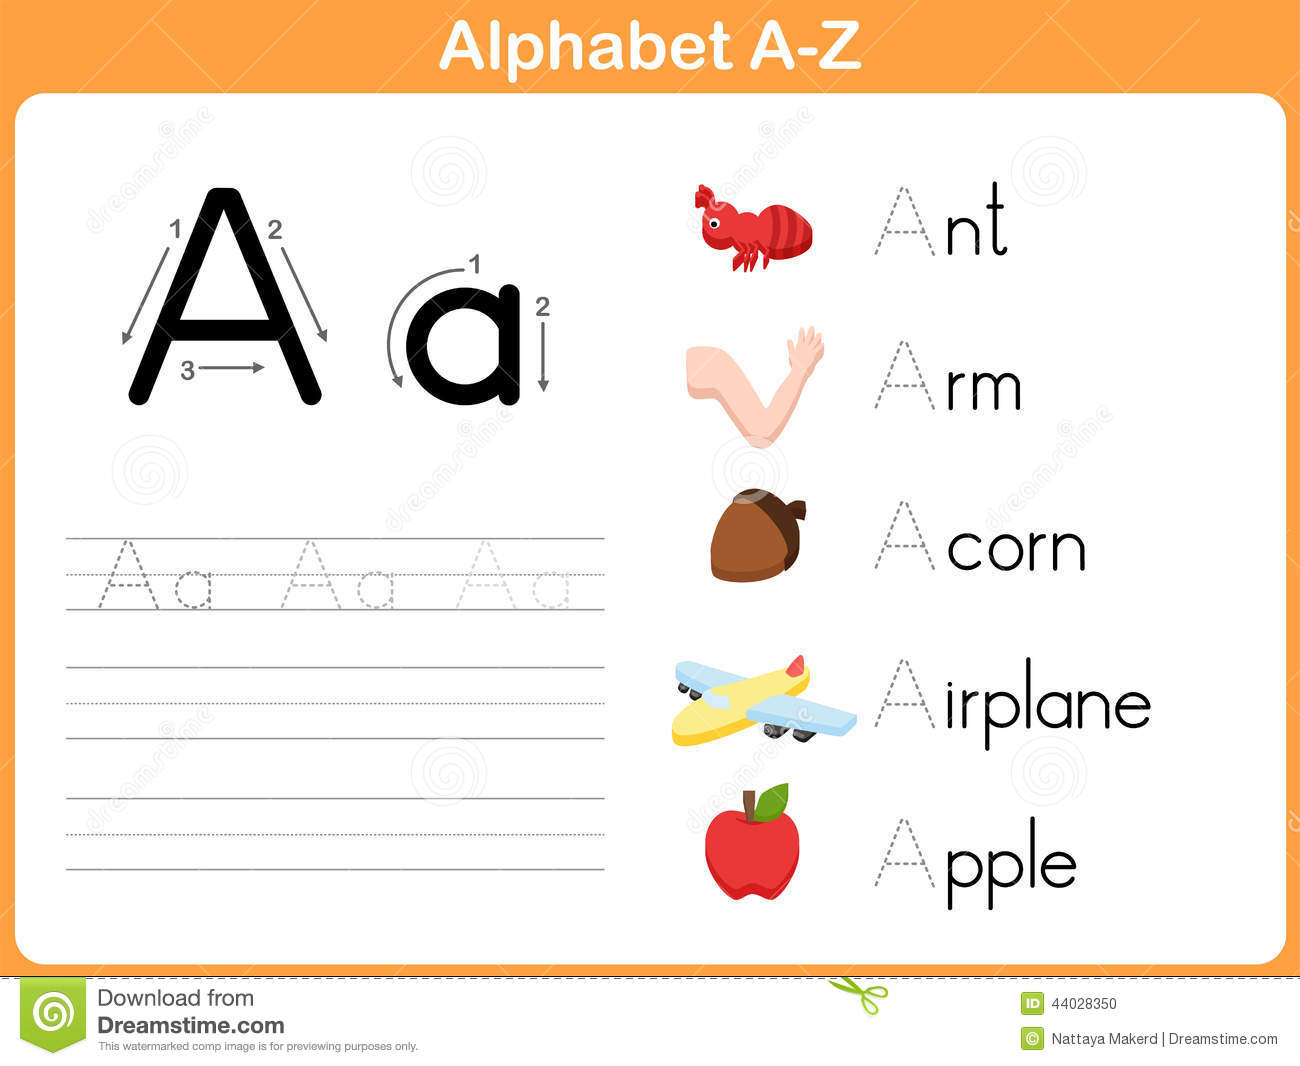 Alphabet Tracing Worksheet Stock Vector. Illustration Of inside Free Tracing Letters Worksheet A-Z